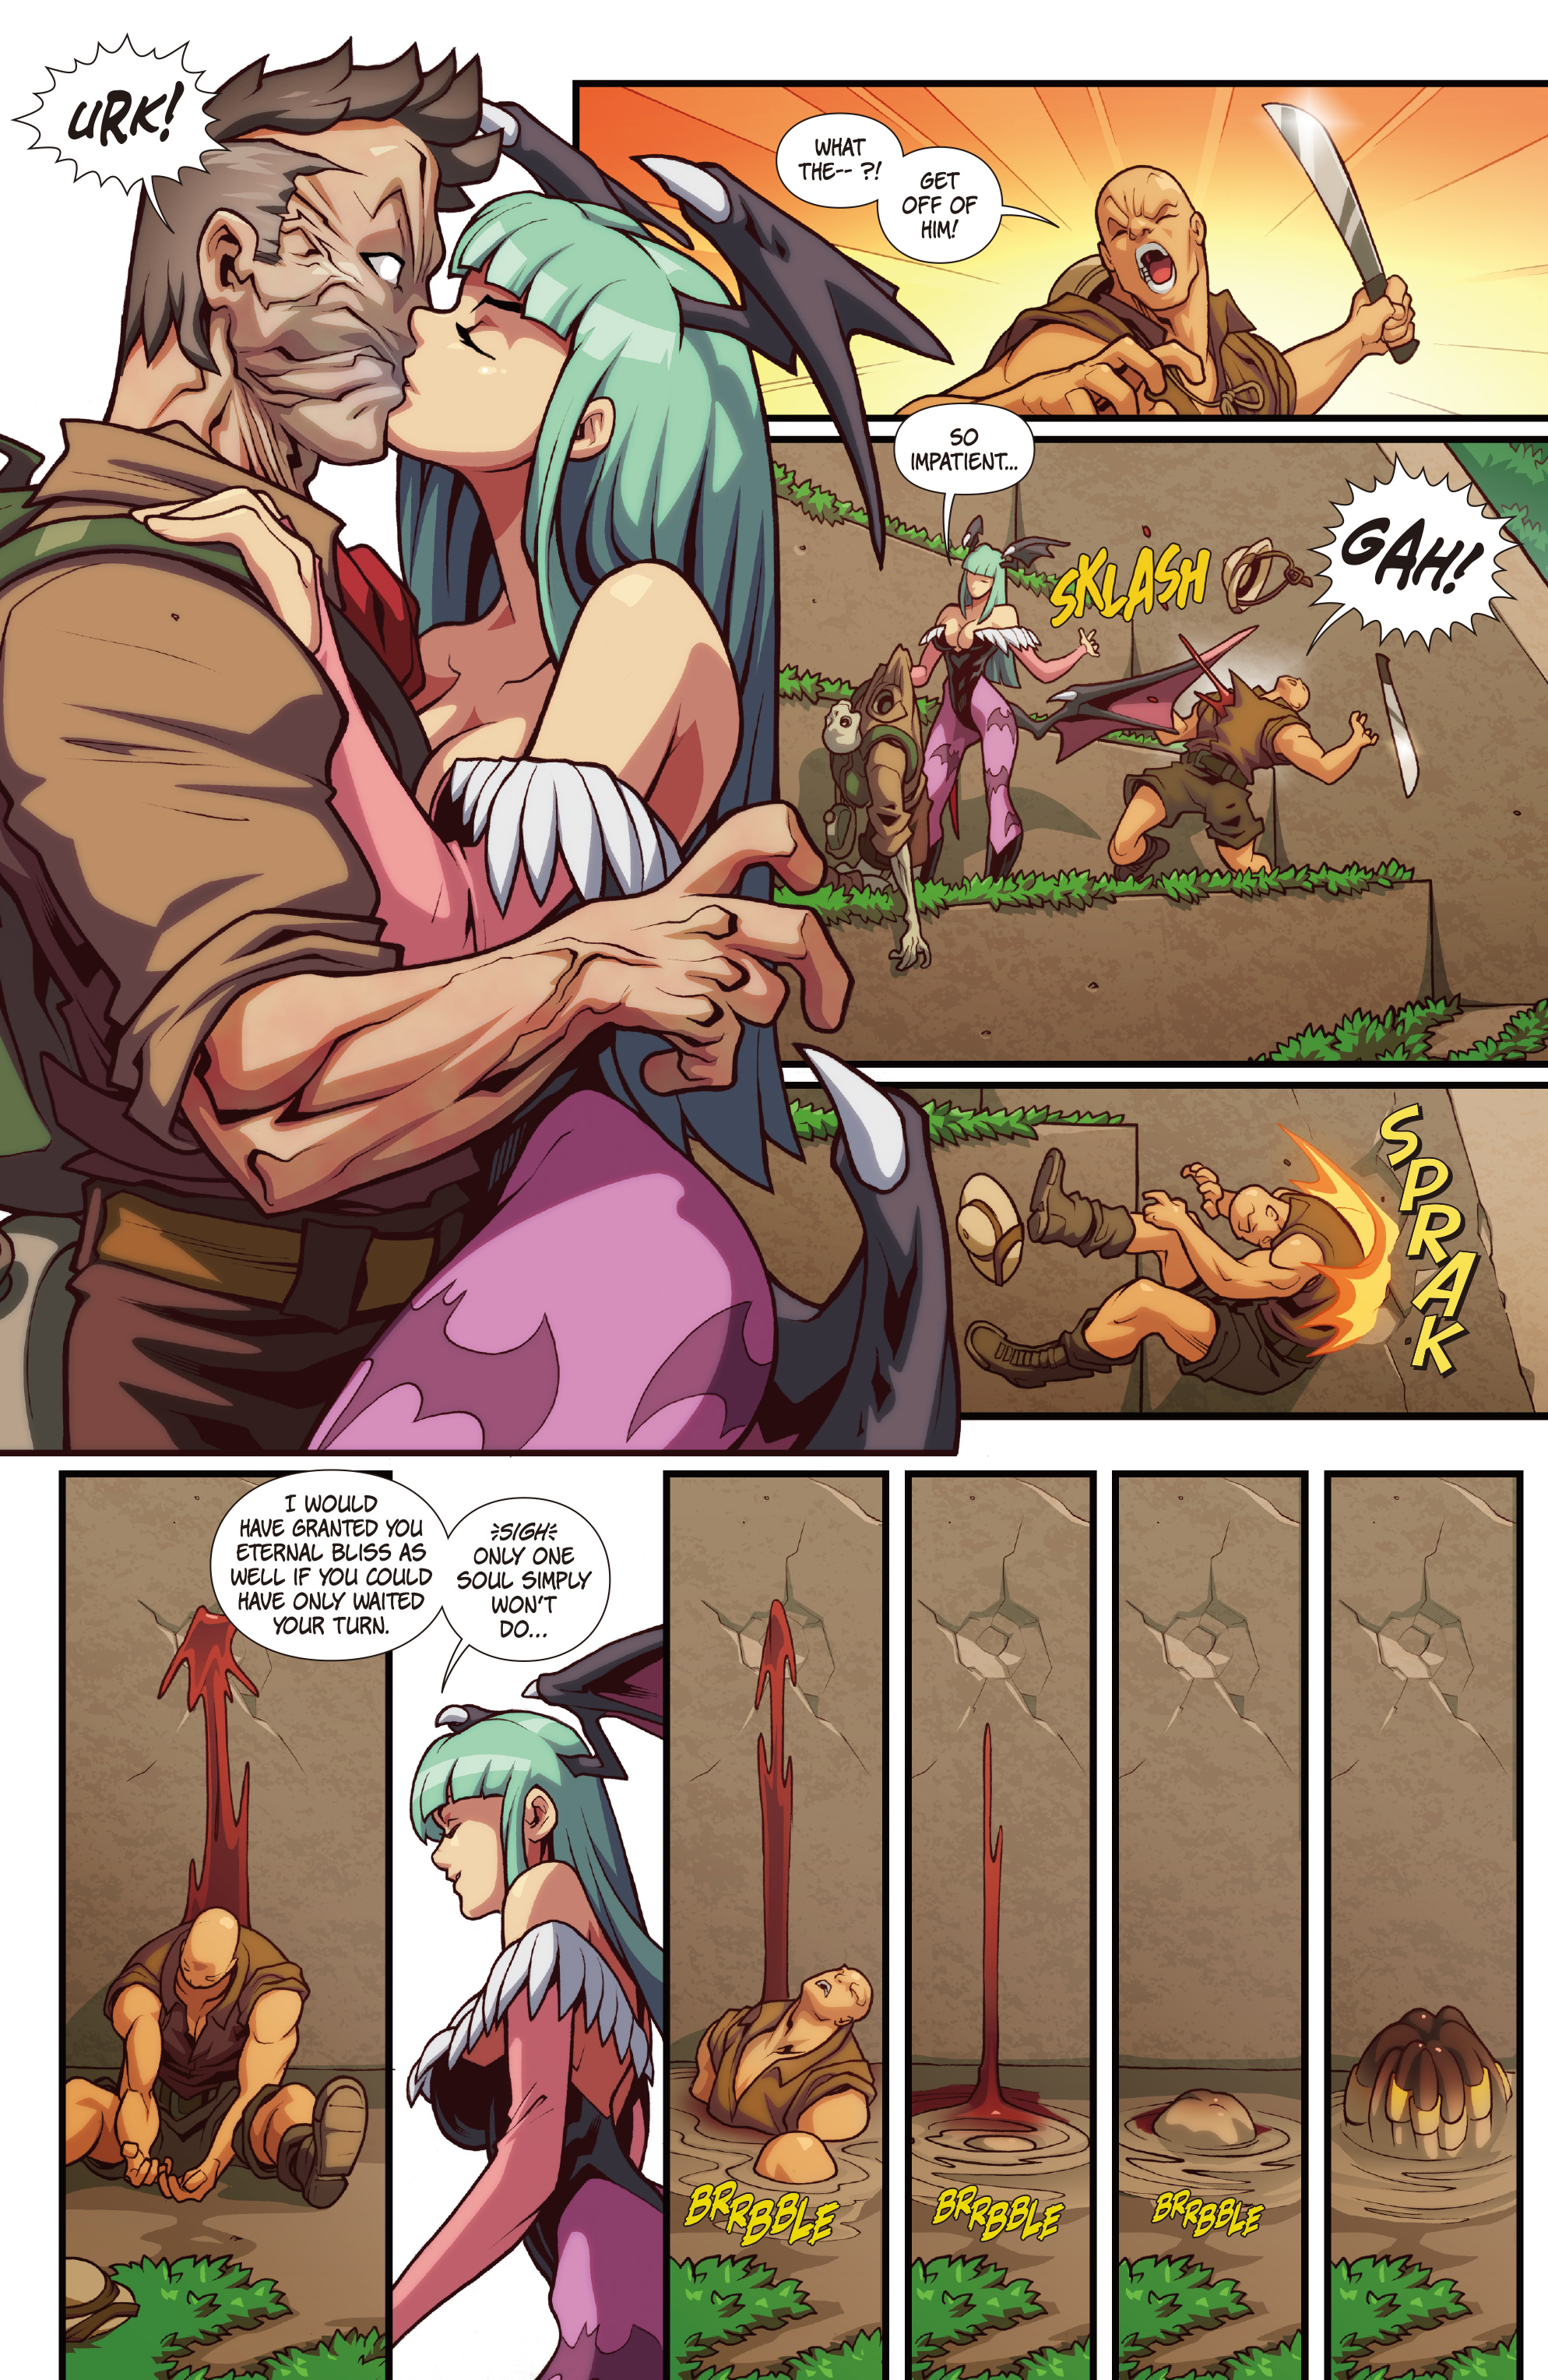 Street Fighter Vs Darkstalkers 2017 Chapter 3 Page 8